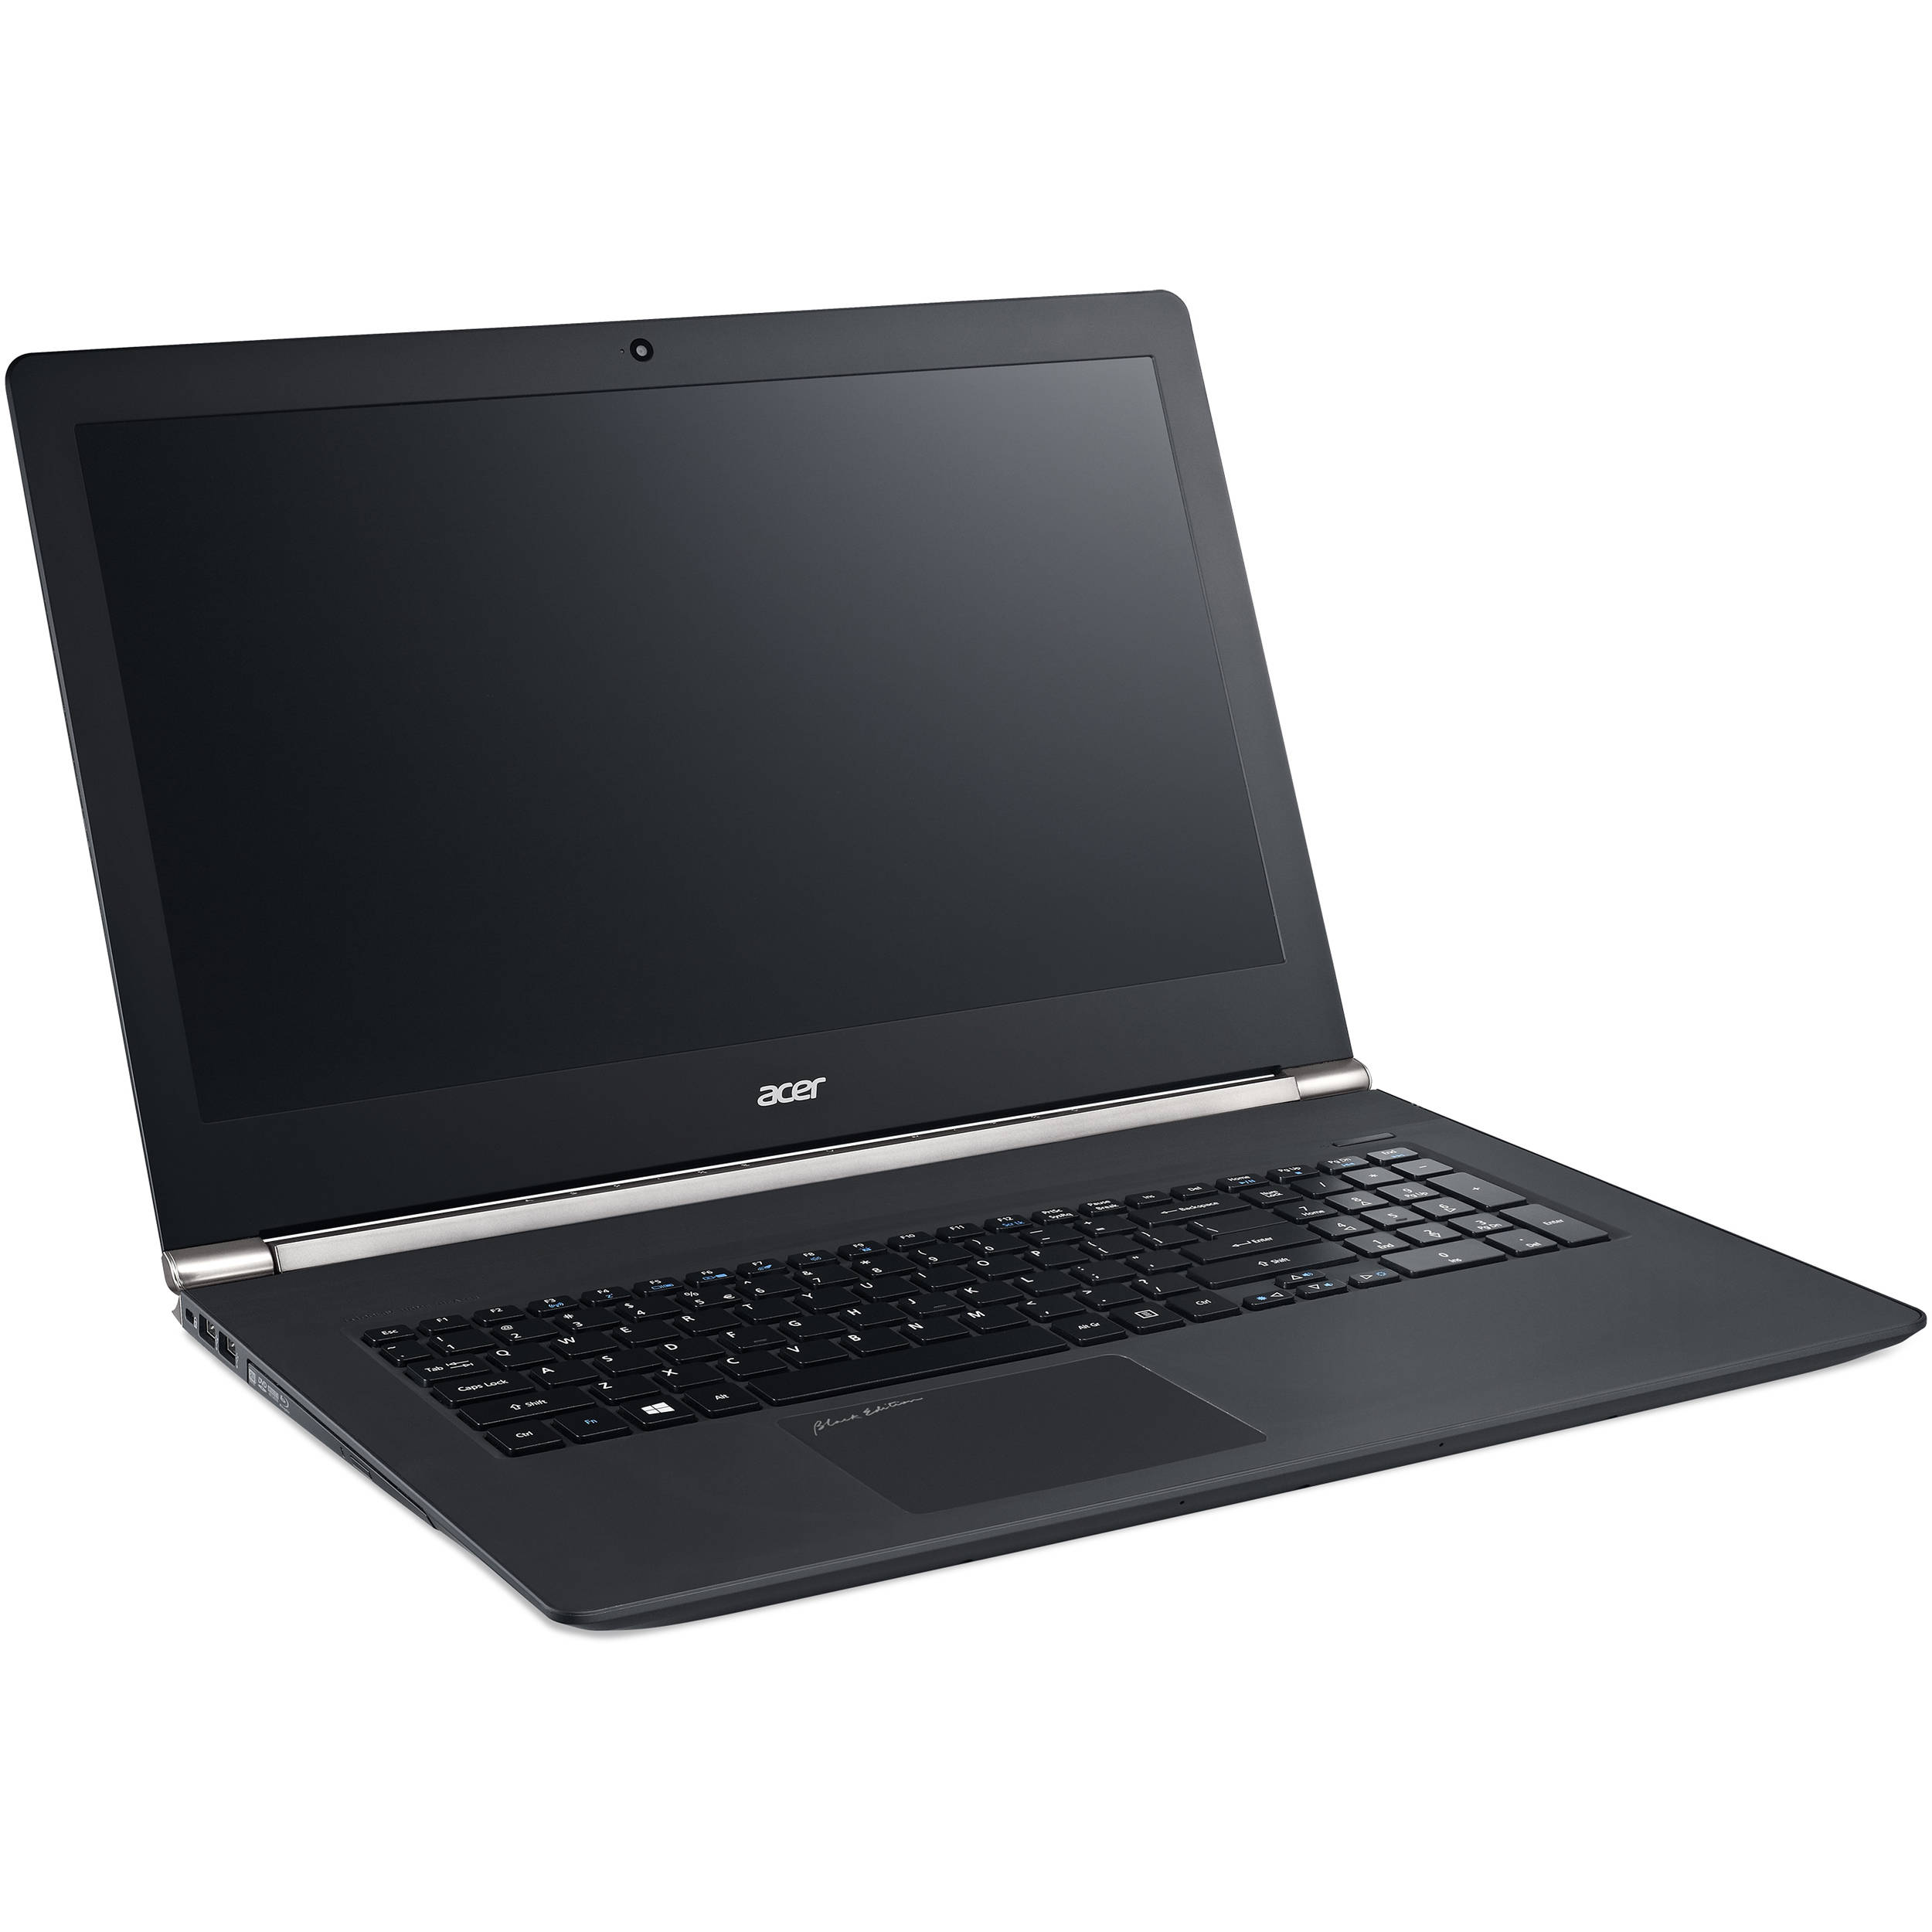 Acer Aspire 1640 HD Audio Driver Download